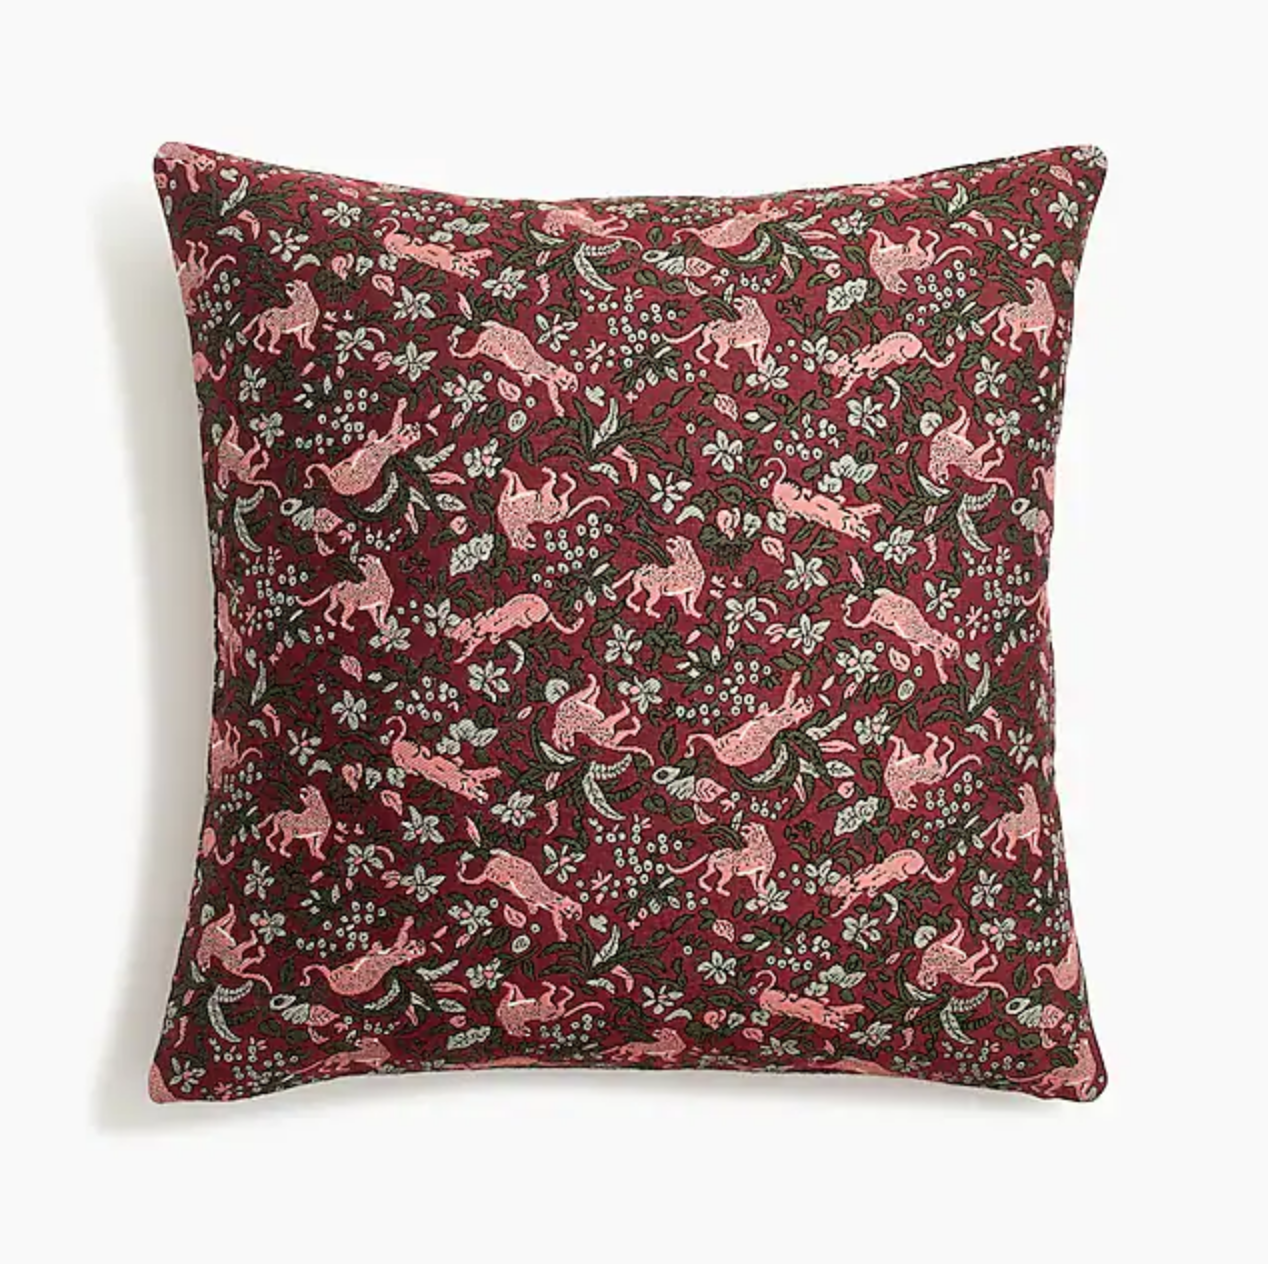 Compono jacquard pillow in jungle cat print